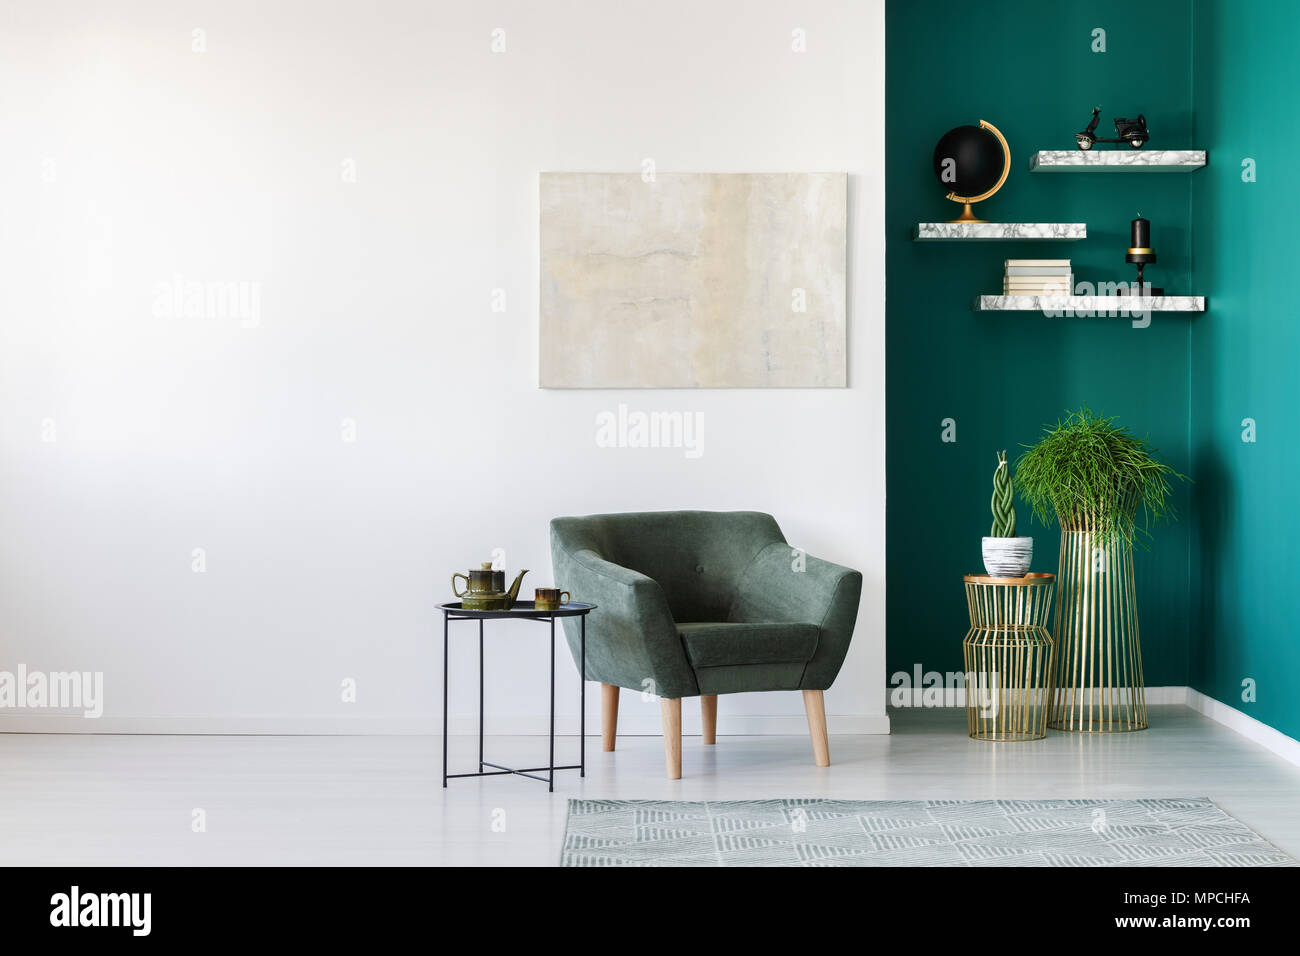 Simple Living Room Interior With Green Armchair Plants Teapot Set On The Table And Marble Shelves On The Wall Stock Photo Alamy